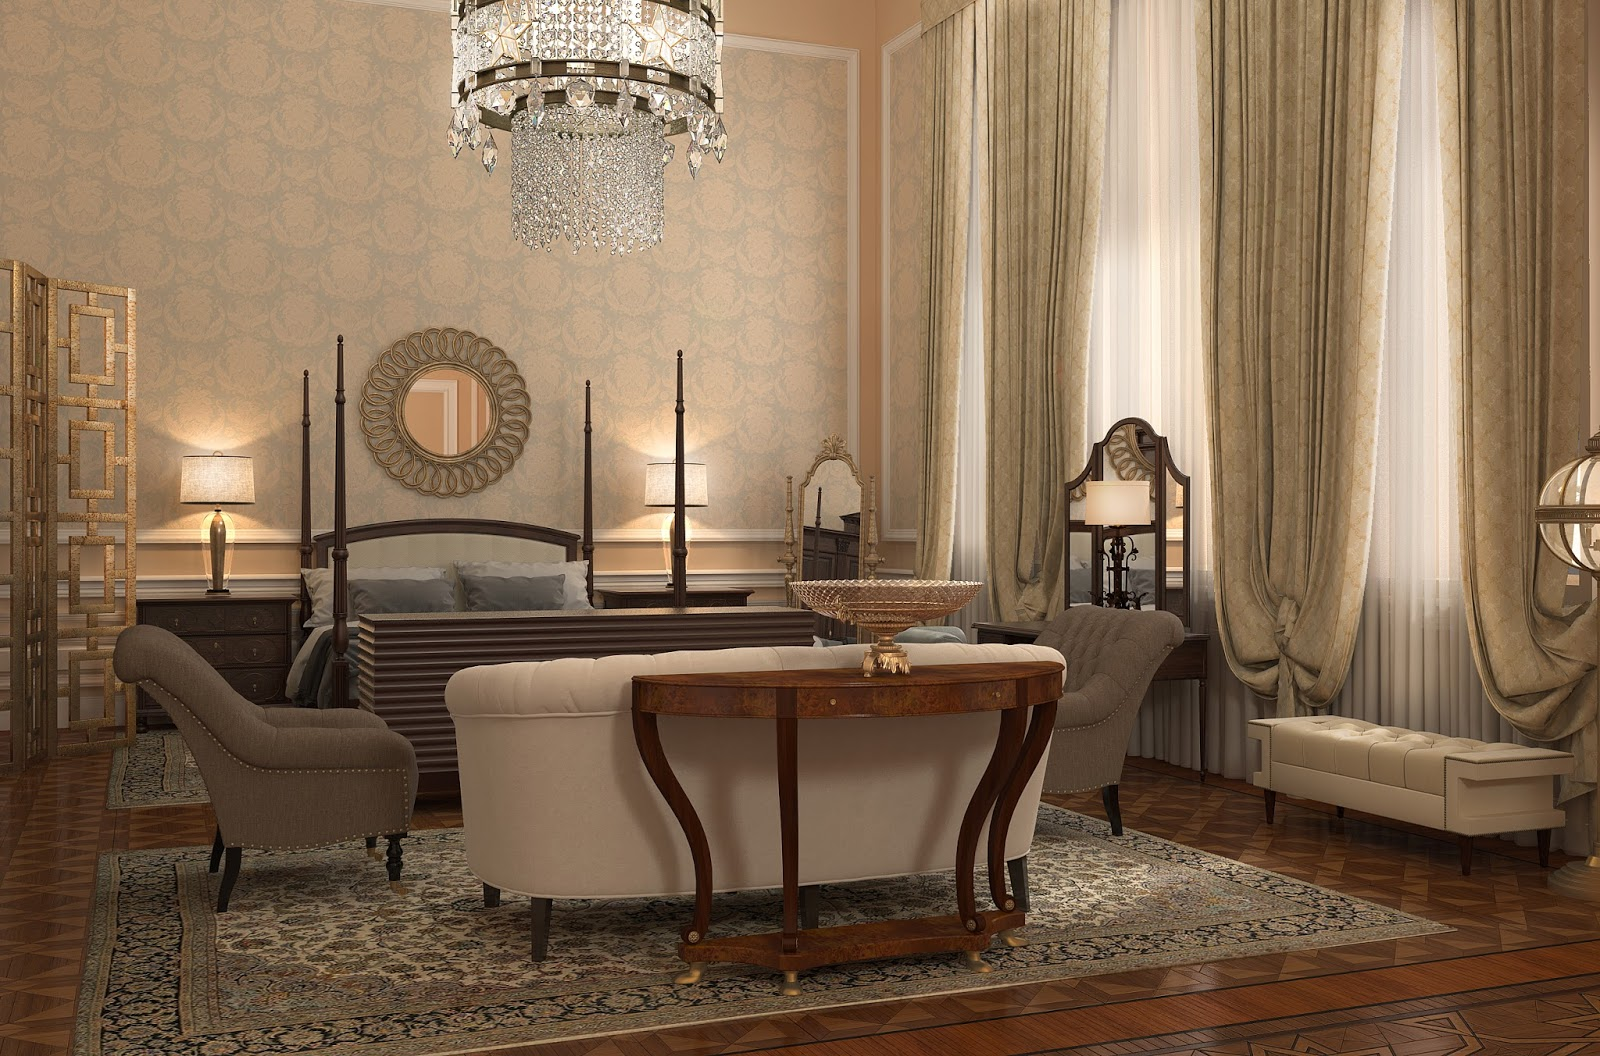 Darya girina interior design march 2015 -  Vision Of Interiors Of The Bariatinsky Palace Antique Elements Combine With Luxury Contemporary Classical Furniture And Decoration Darya Girina